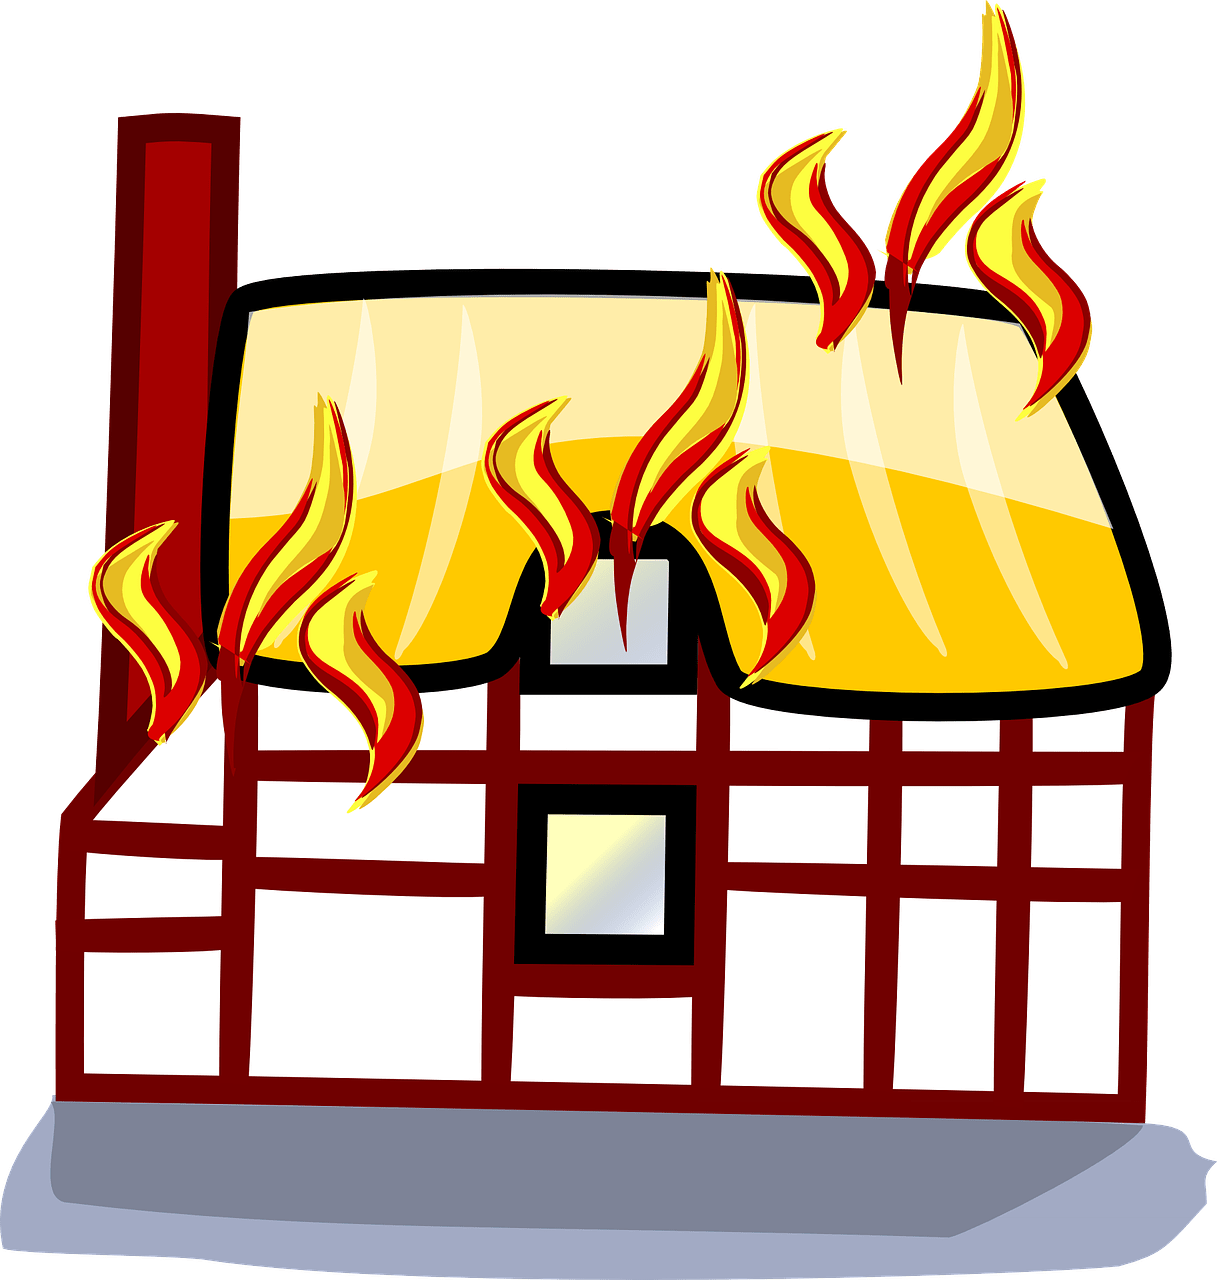 Transparent fire clipart - Everything You Need To Know About Fire Safety In Your - Cartoon Houses On Fire